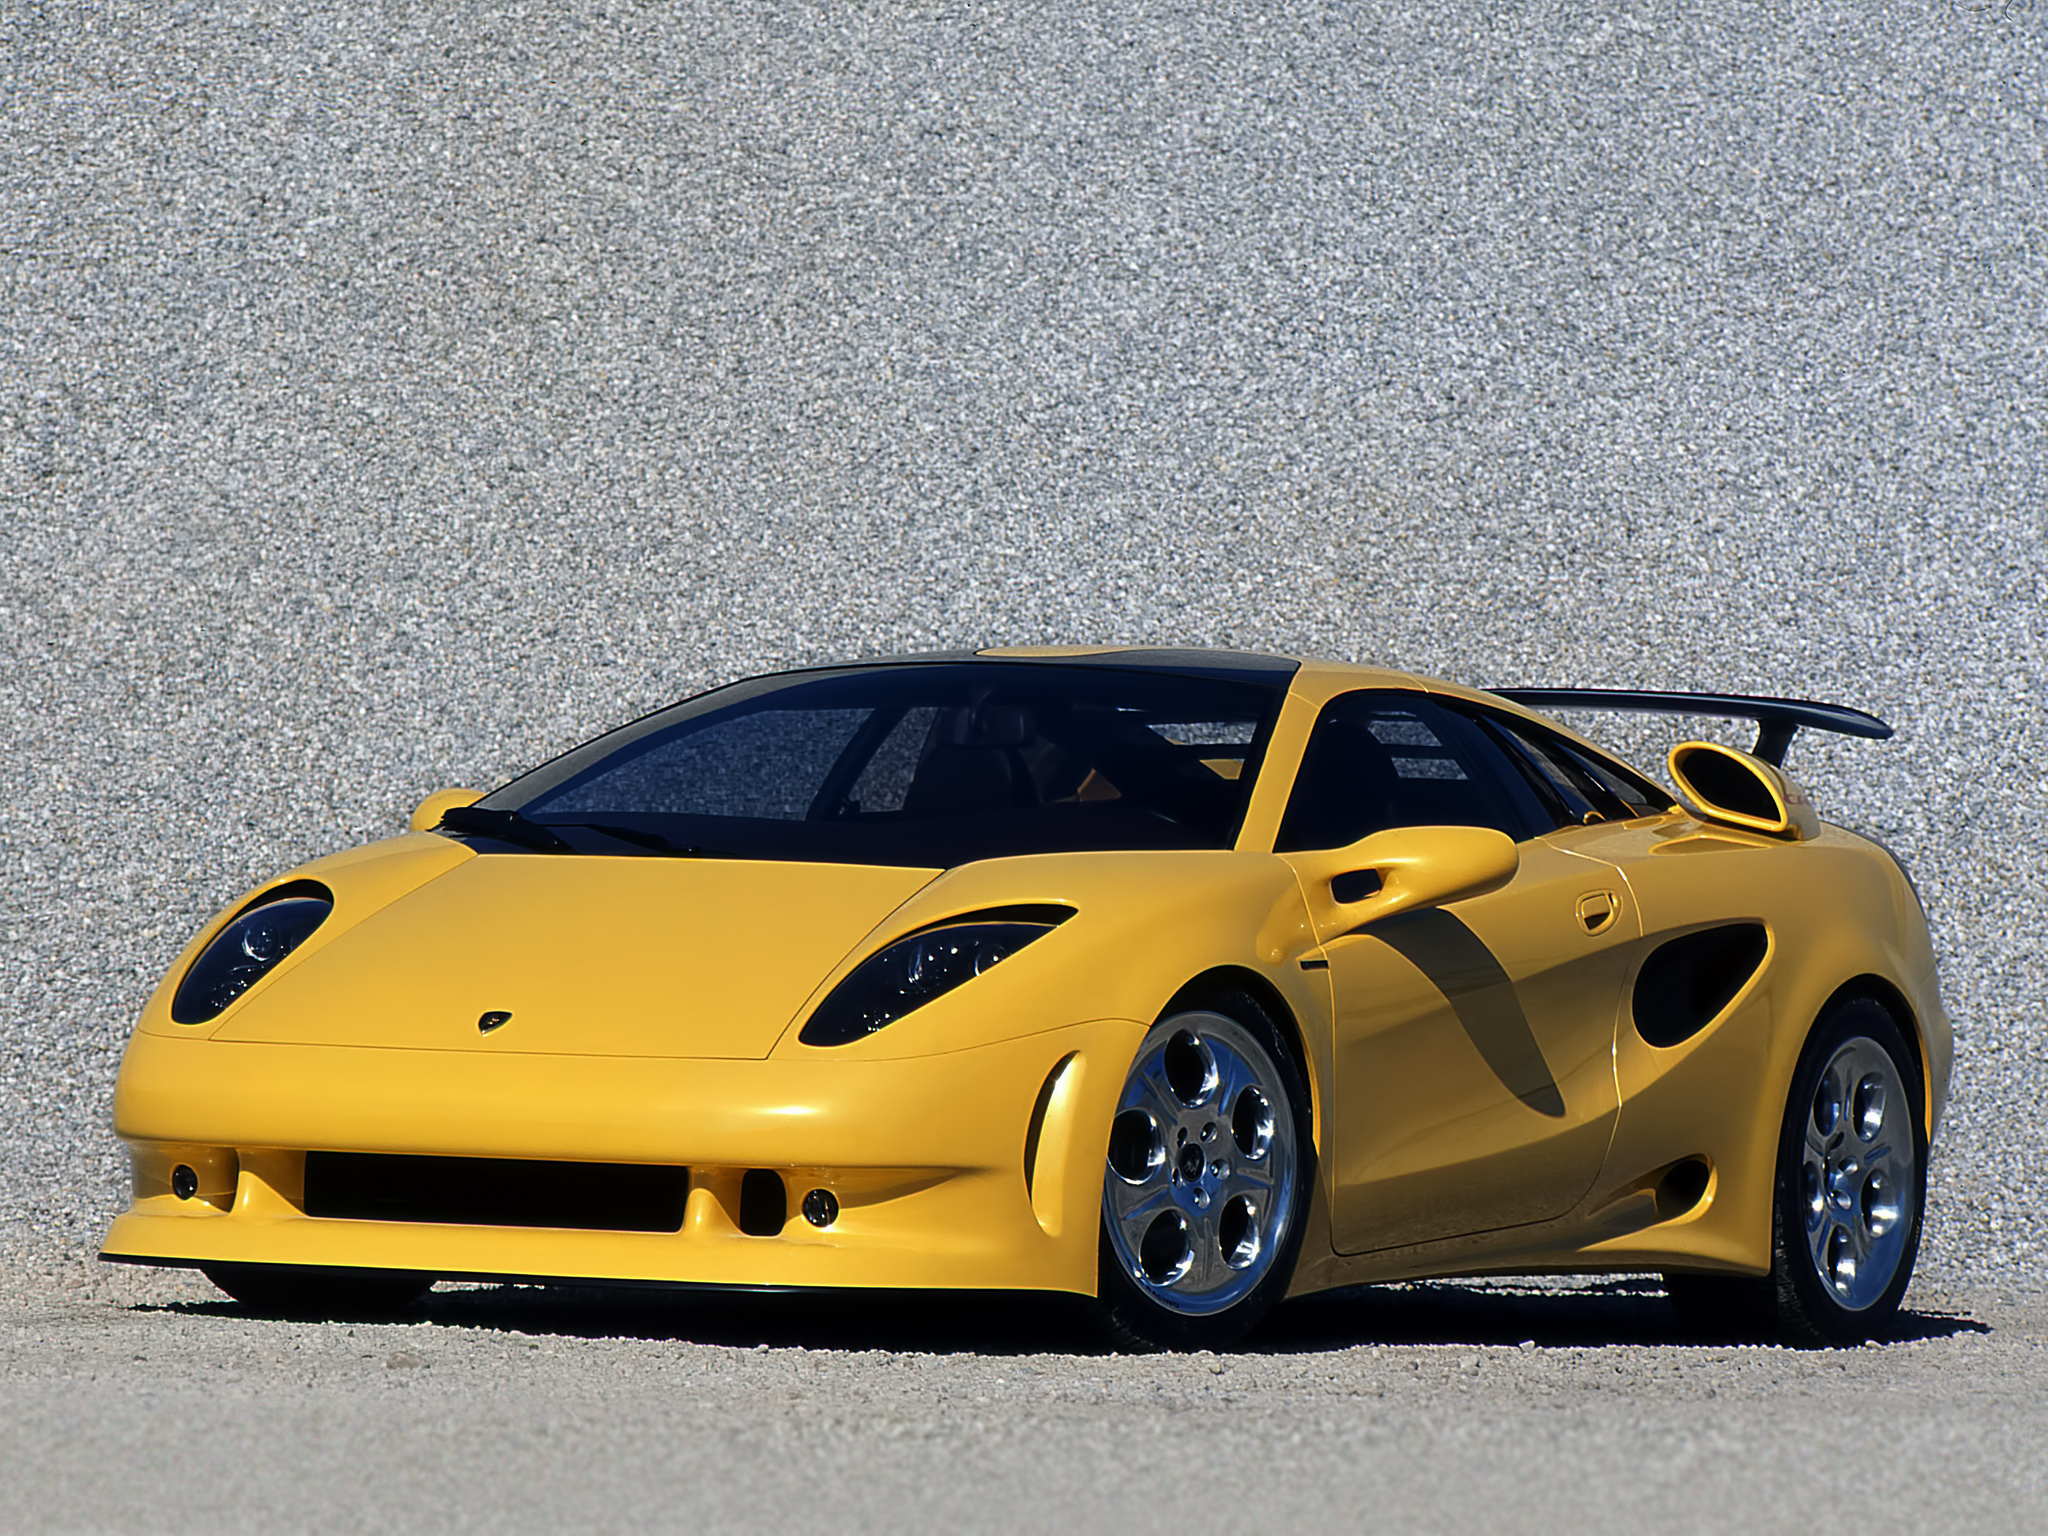 http://bestcarmag.com/sites/default/files/2491369Lamborghini-Cala-Image-Wallpaper-x3mpa-Free.jpeg